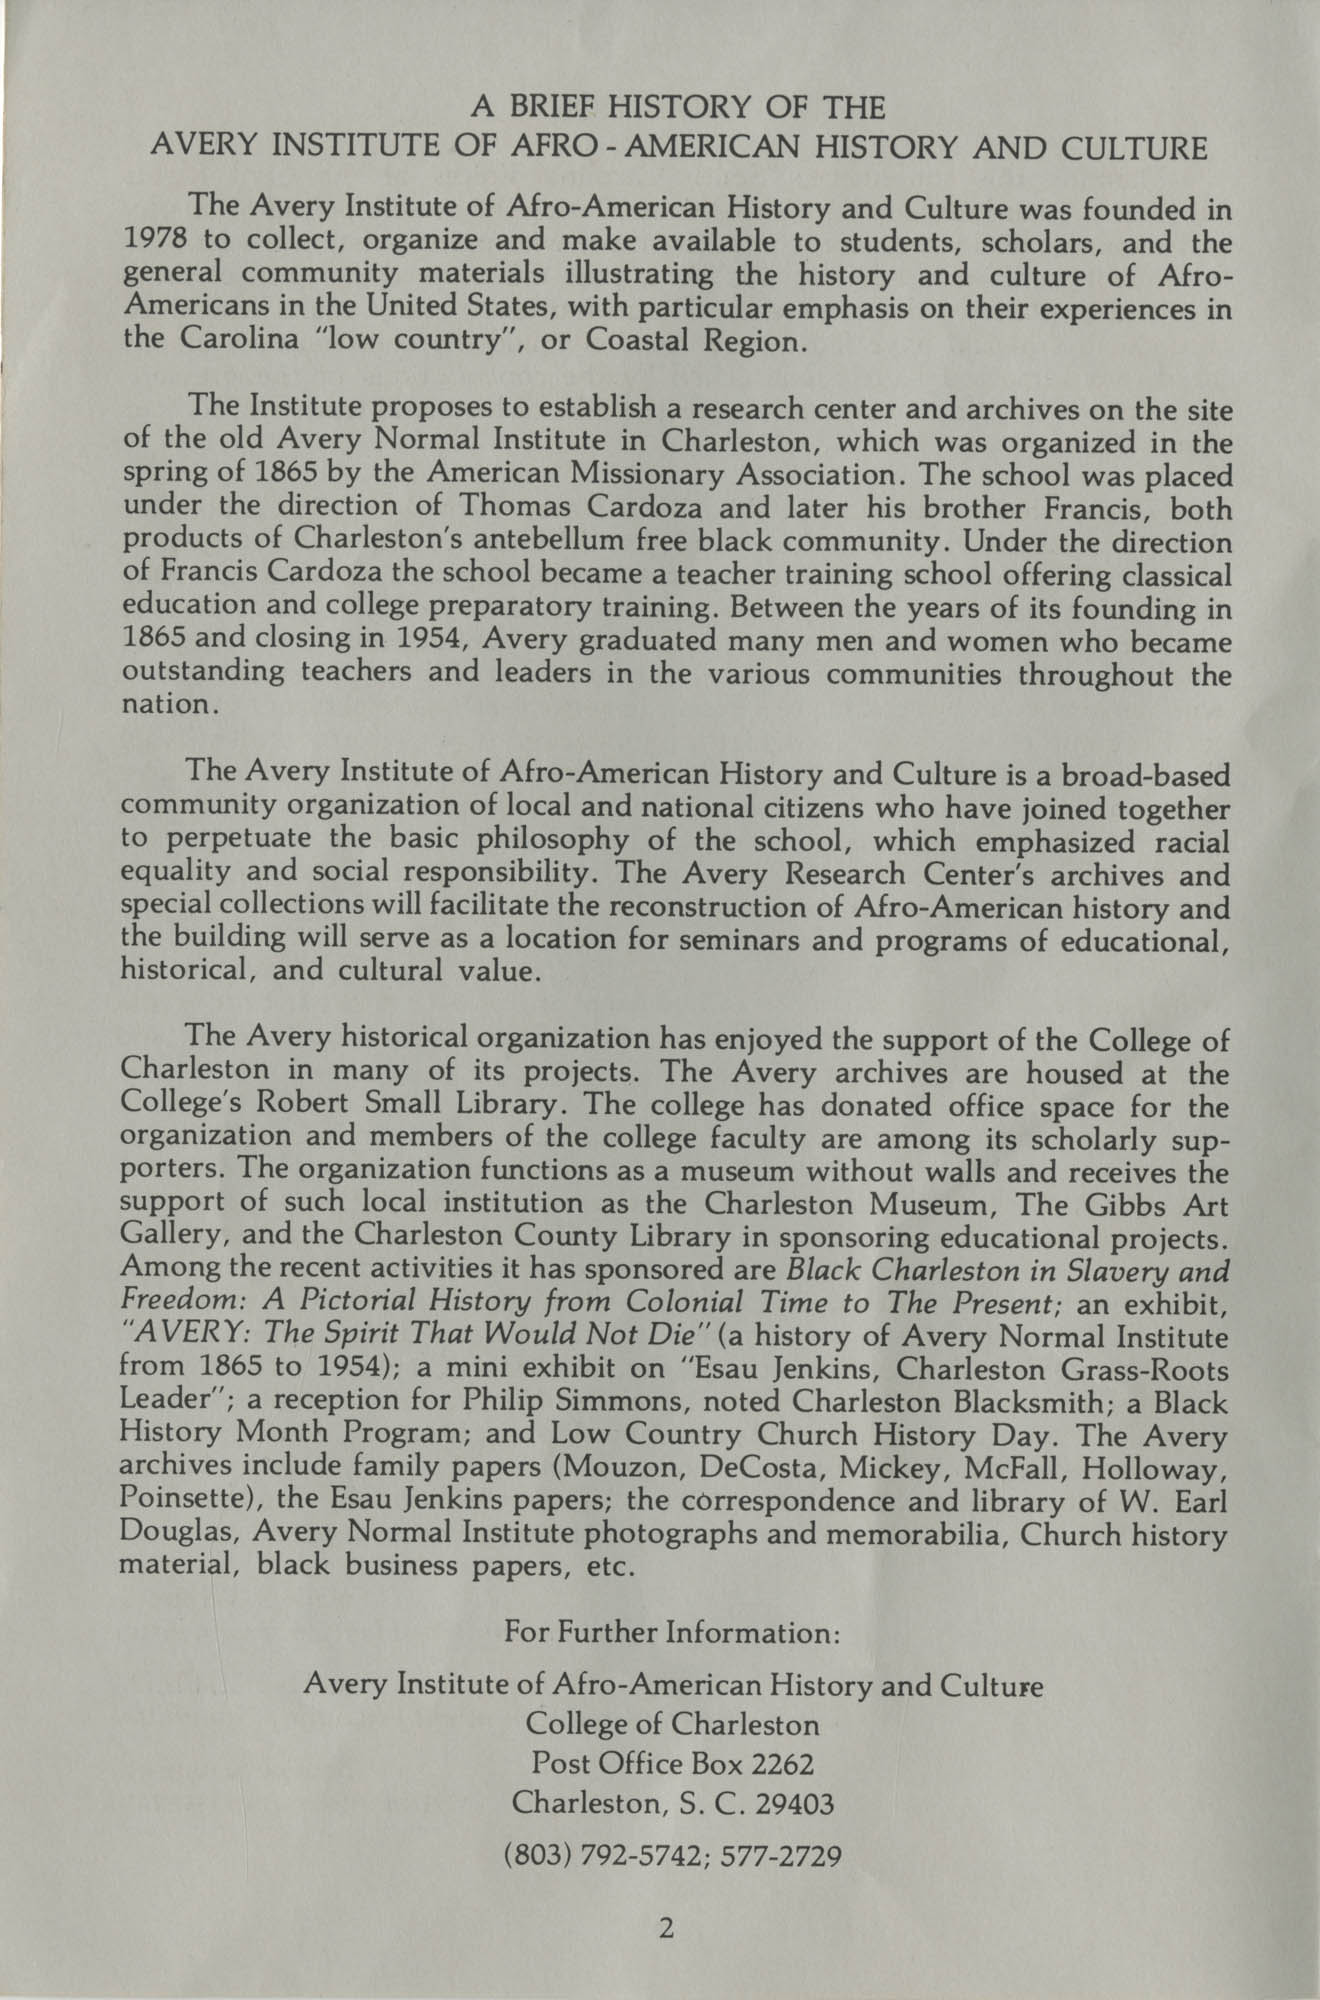 South Carolina Voices of the Civil Rights Movement, Page 2